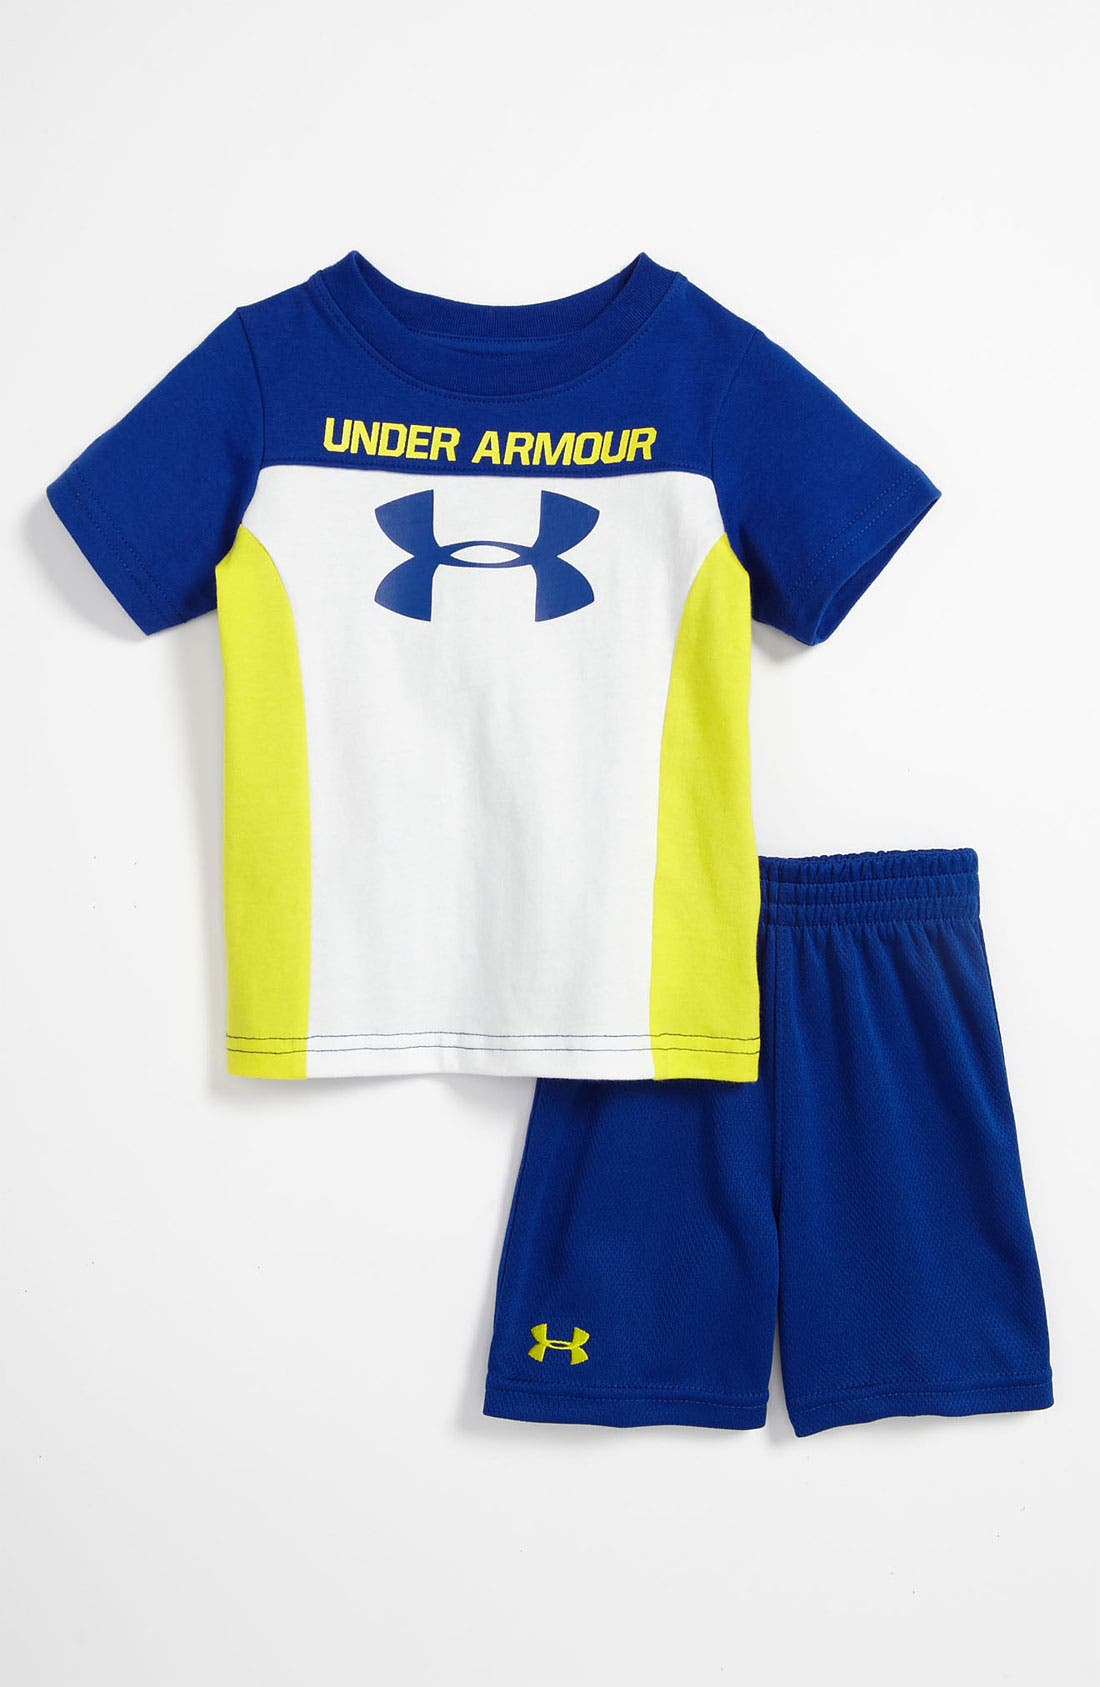 Alternate Image 1 Selected - Under Armour 'Mixed Media' T-Shirt & Shorts (Infant)